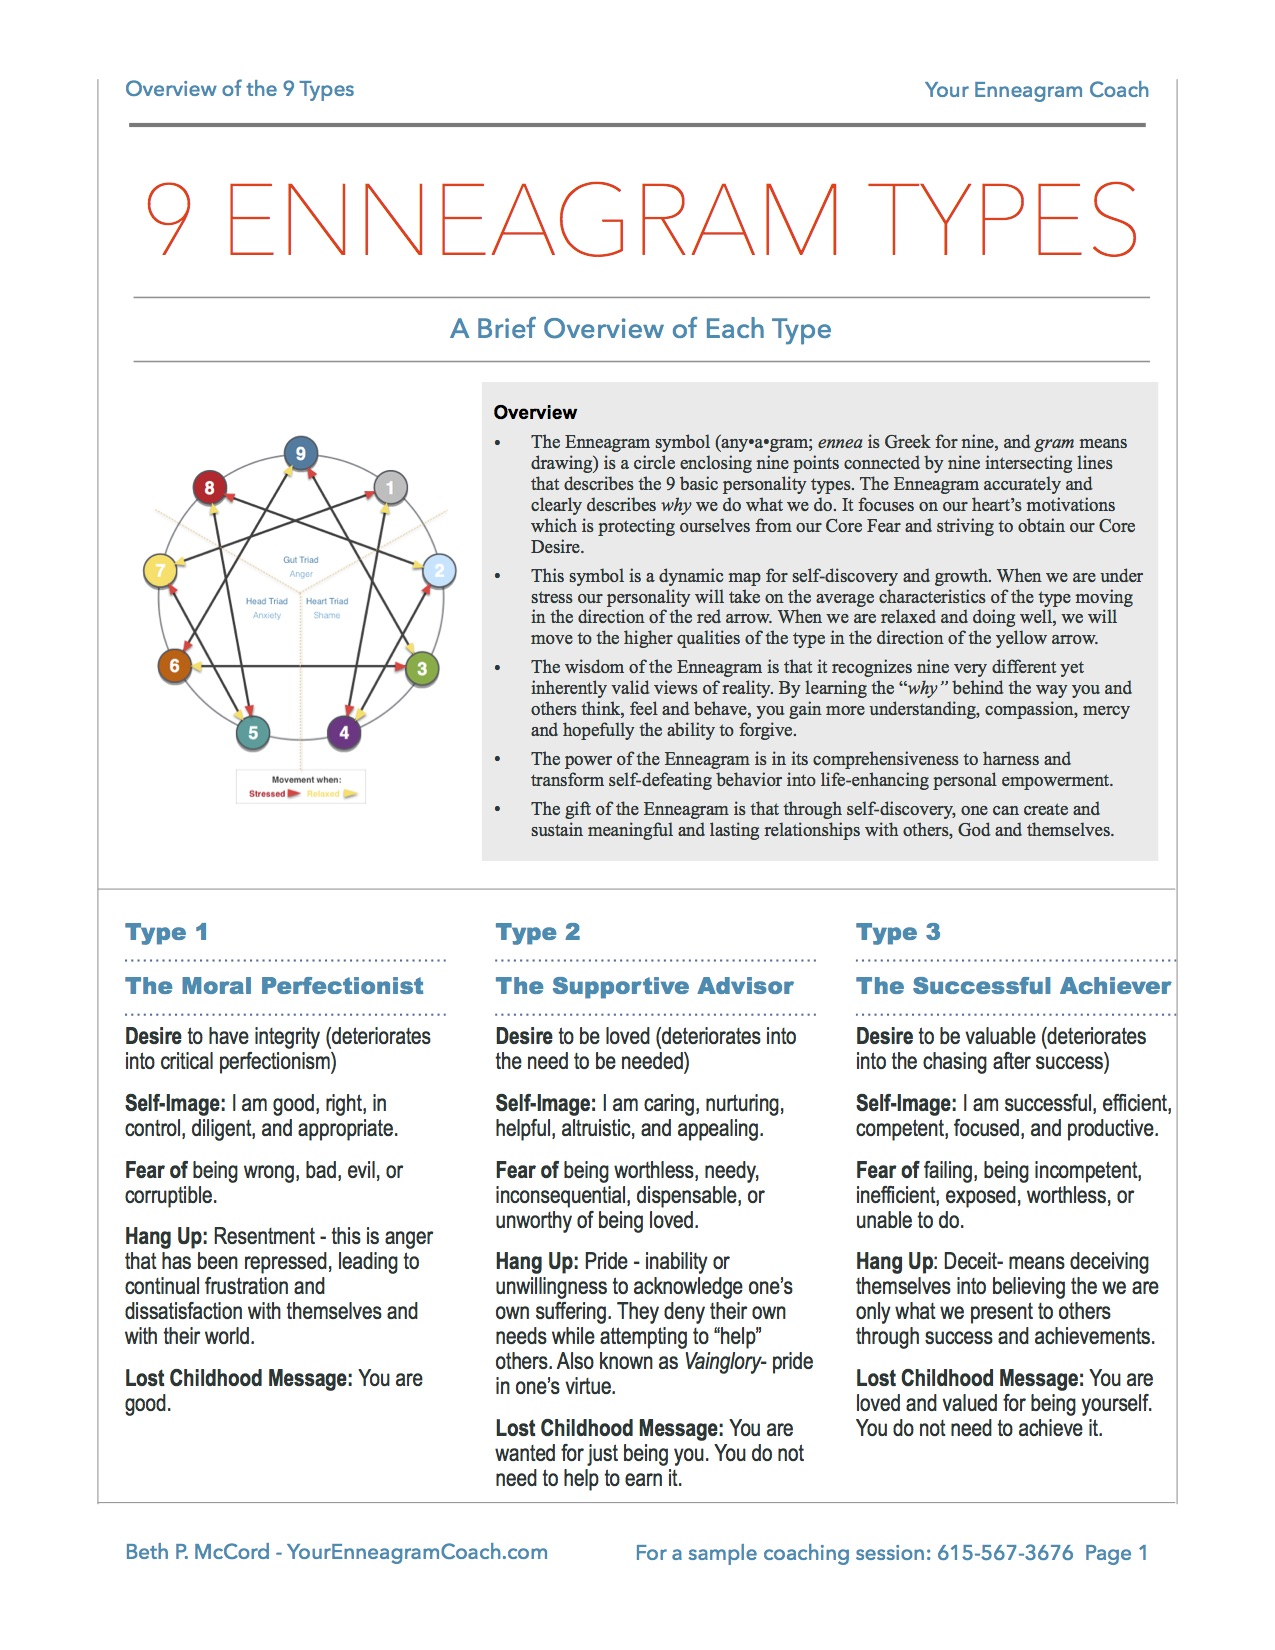 Overview of 9 Enneagram Personality Types copy